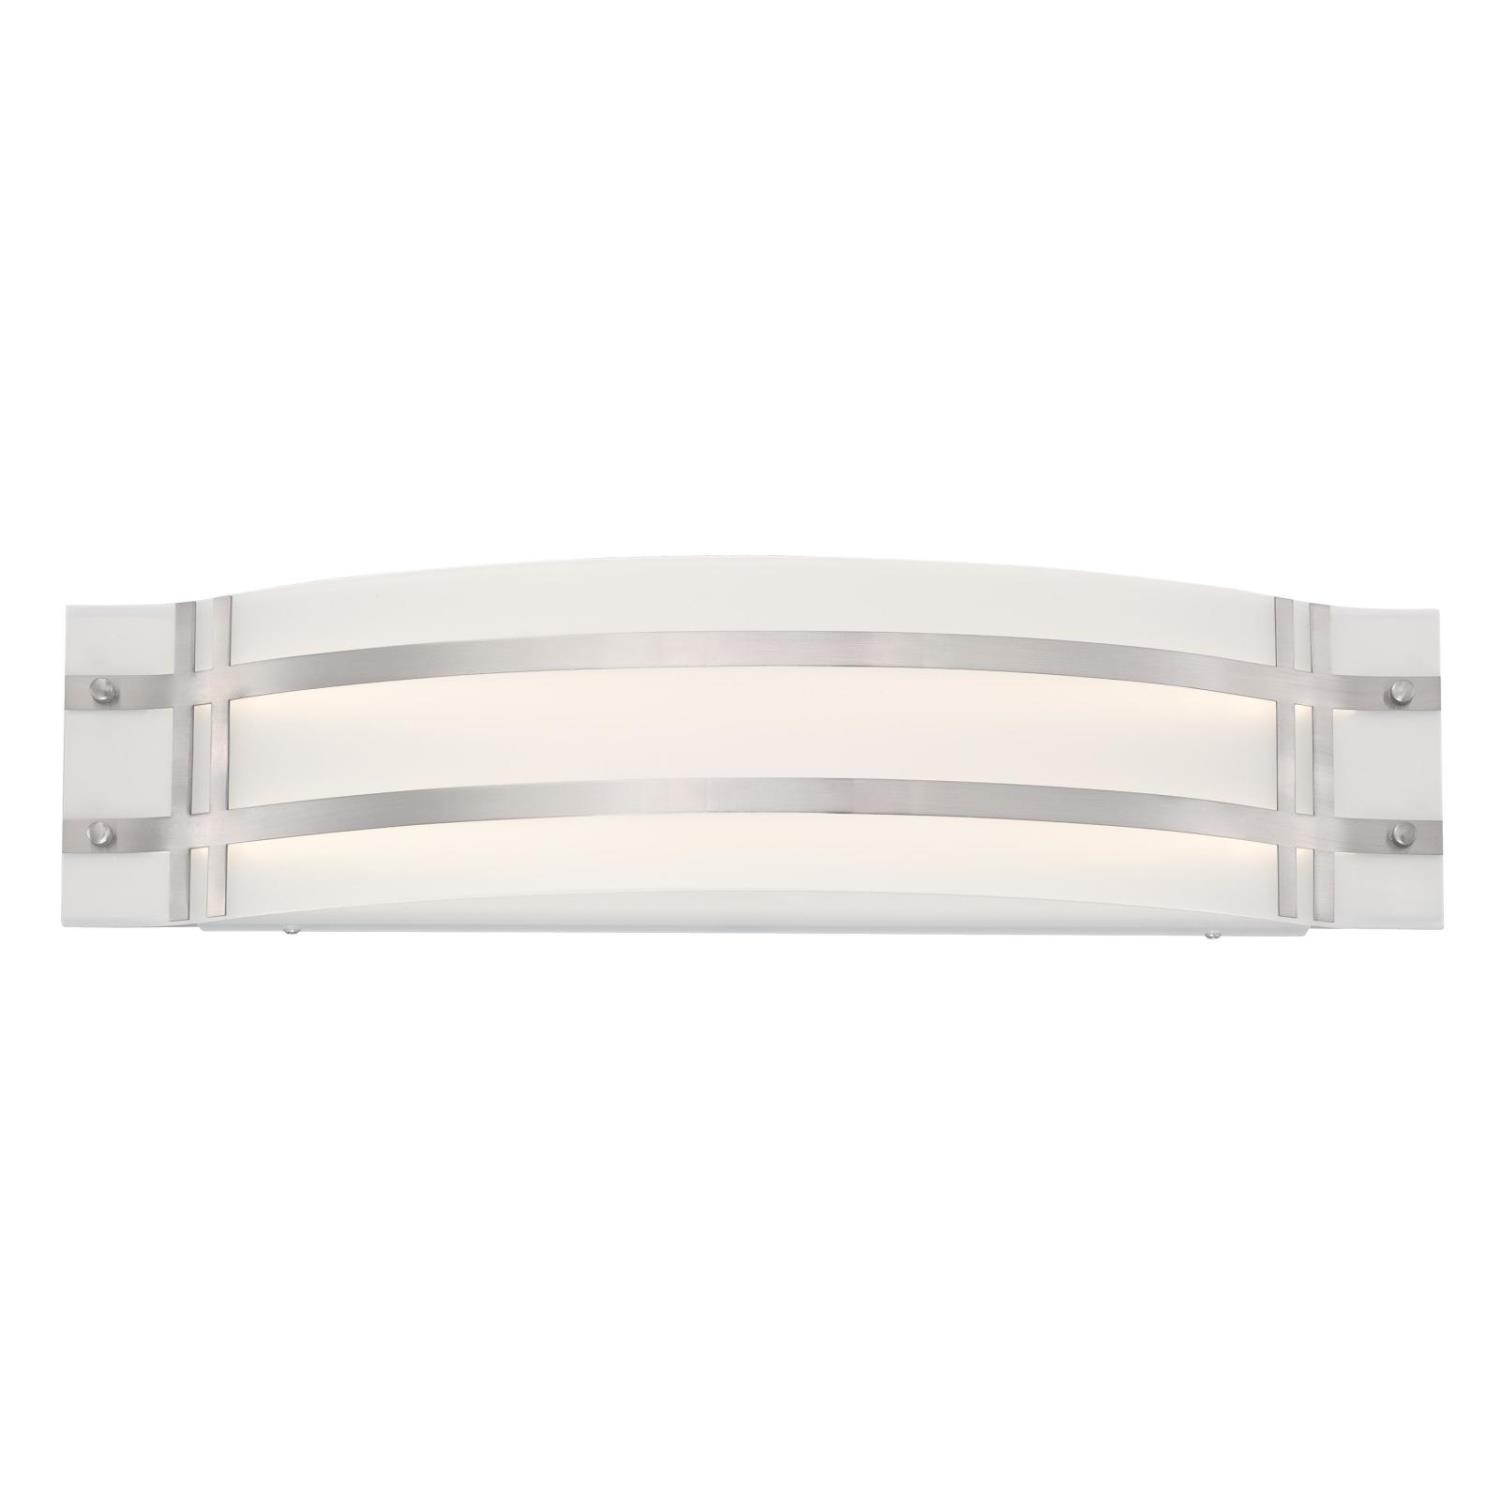 22W 1 Light LED Wall Fixture Brushed Nickel Finish with Frosted Glass